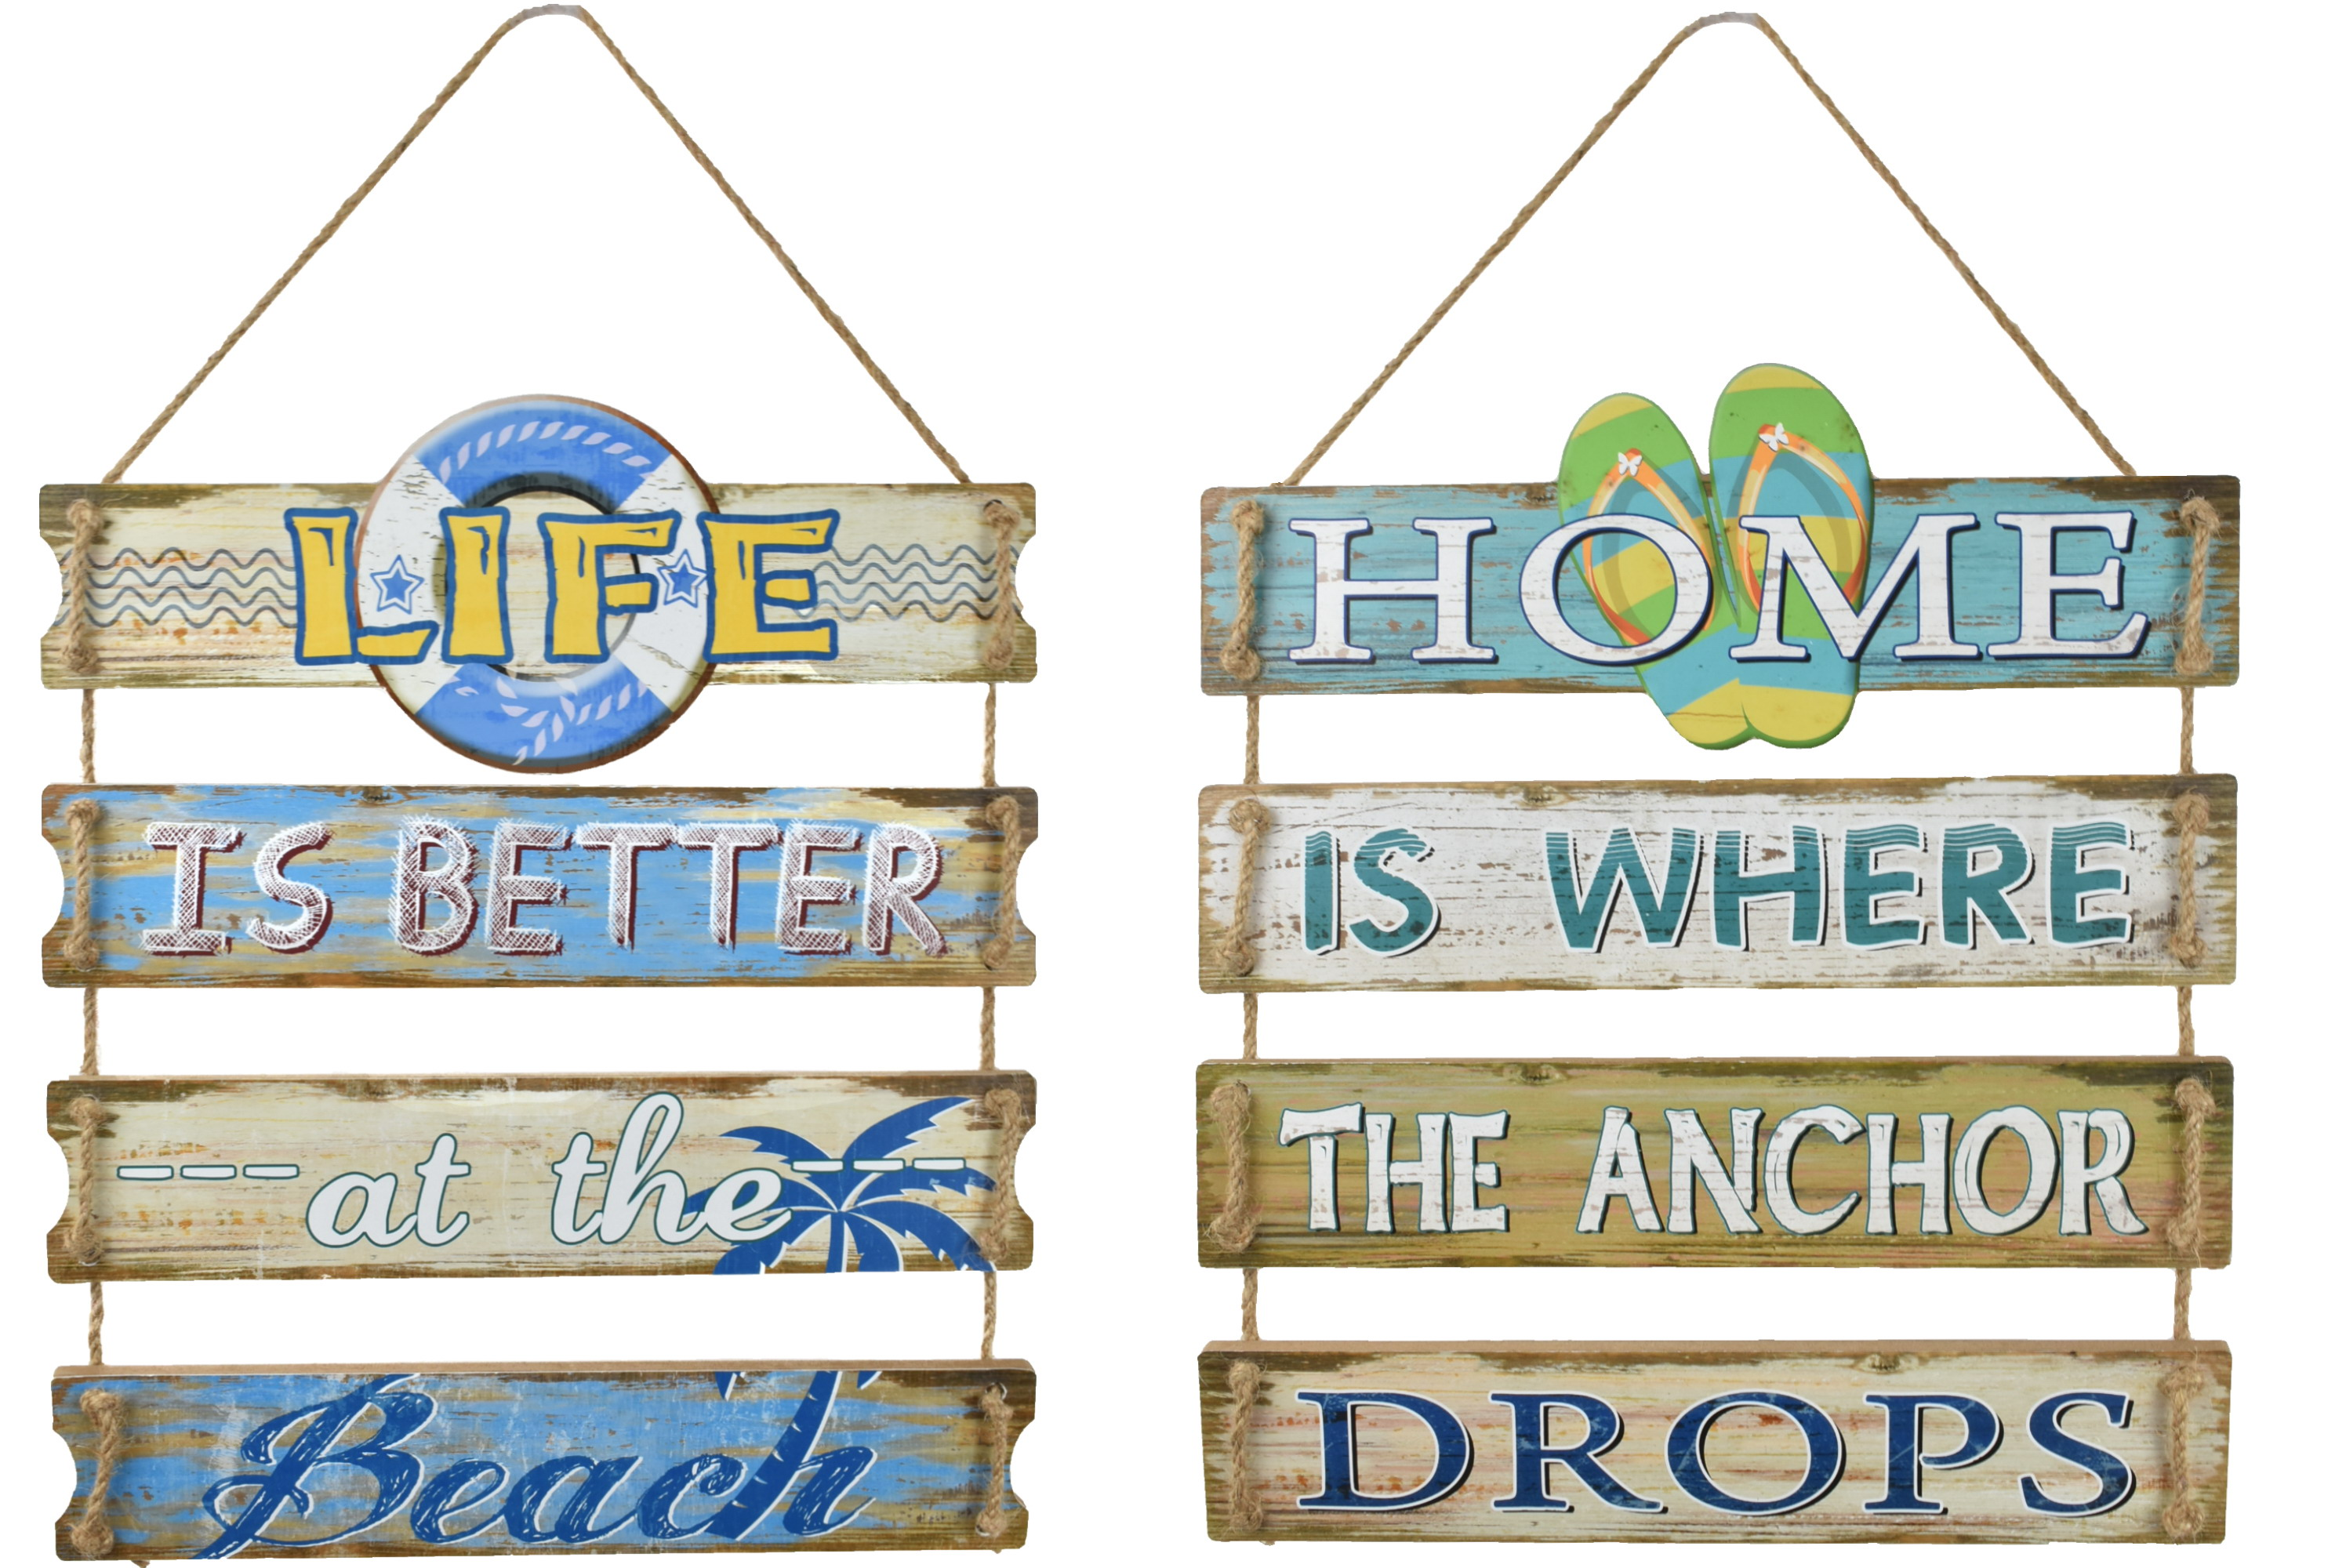 43x39cm 4 Plank Hanging Sign 2 Assorted Designs